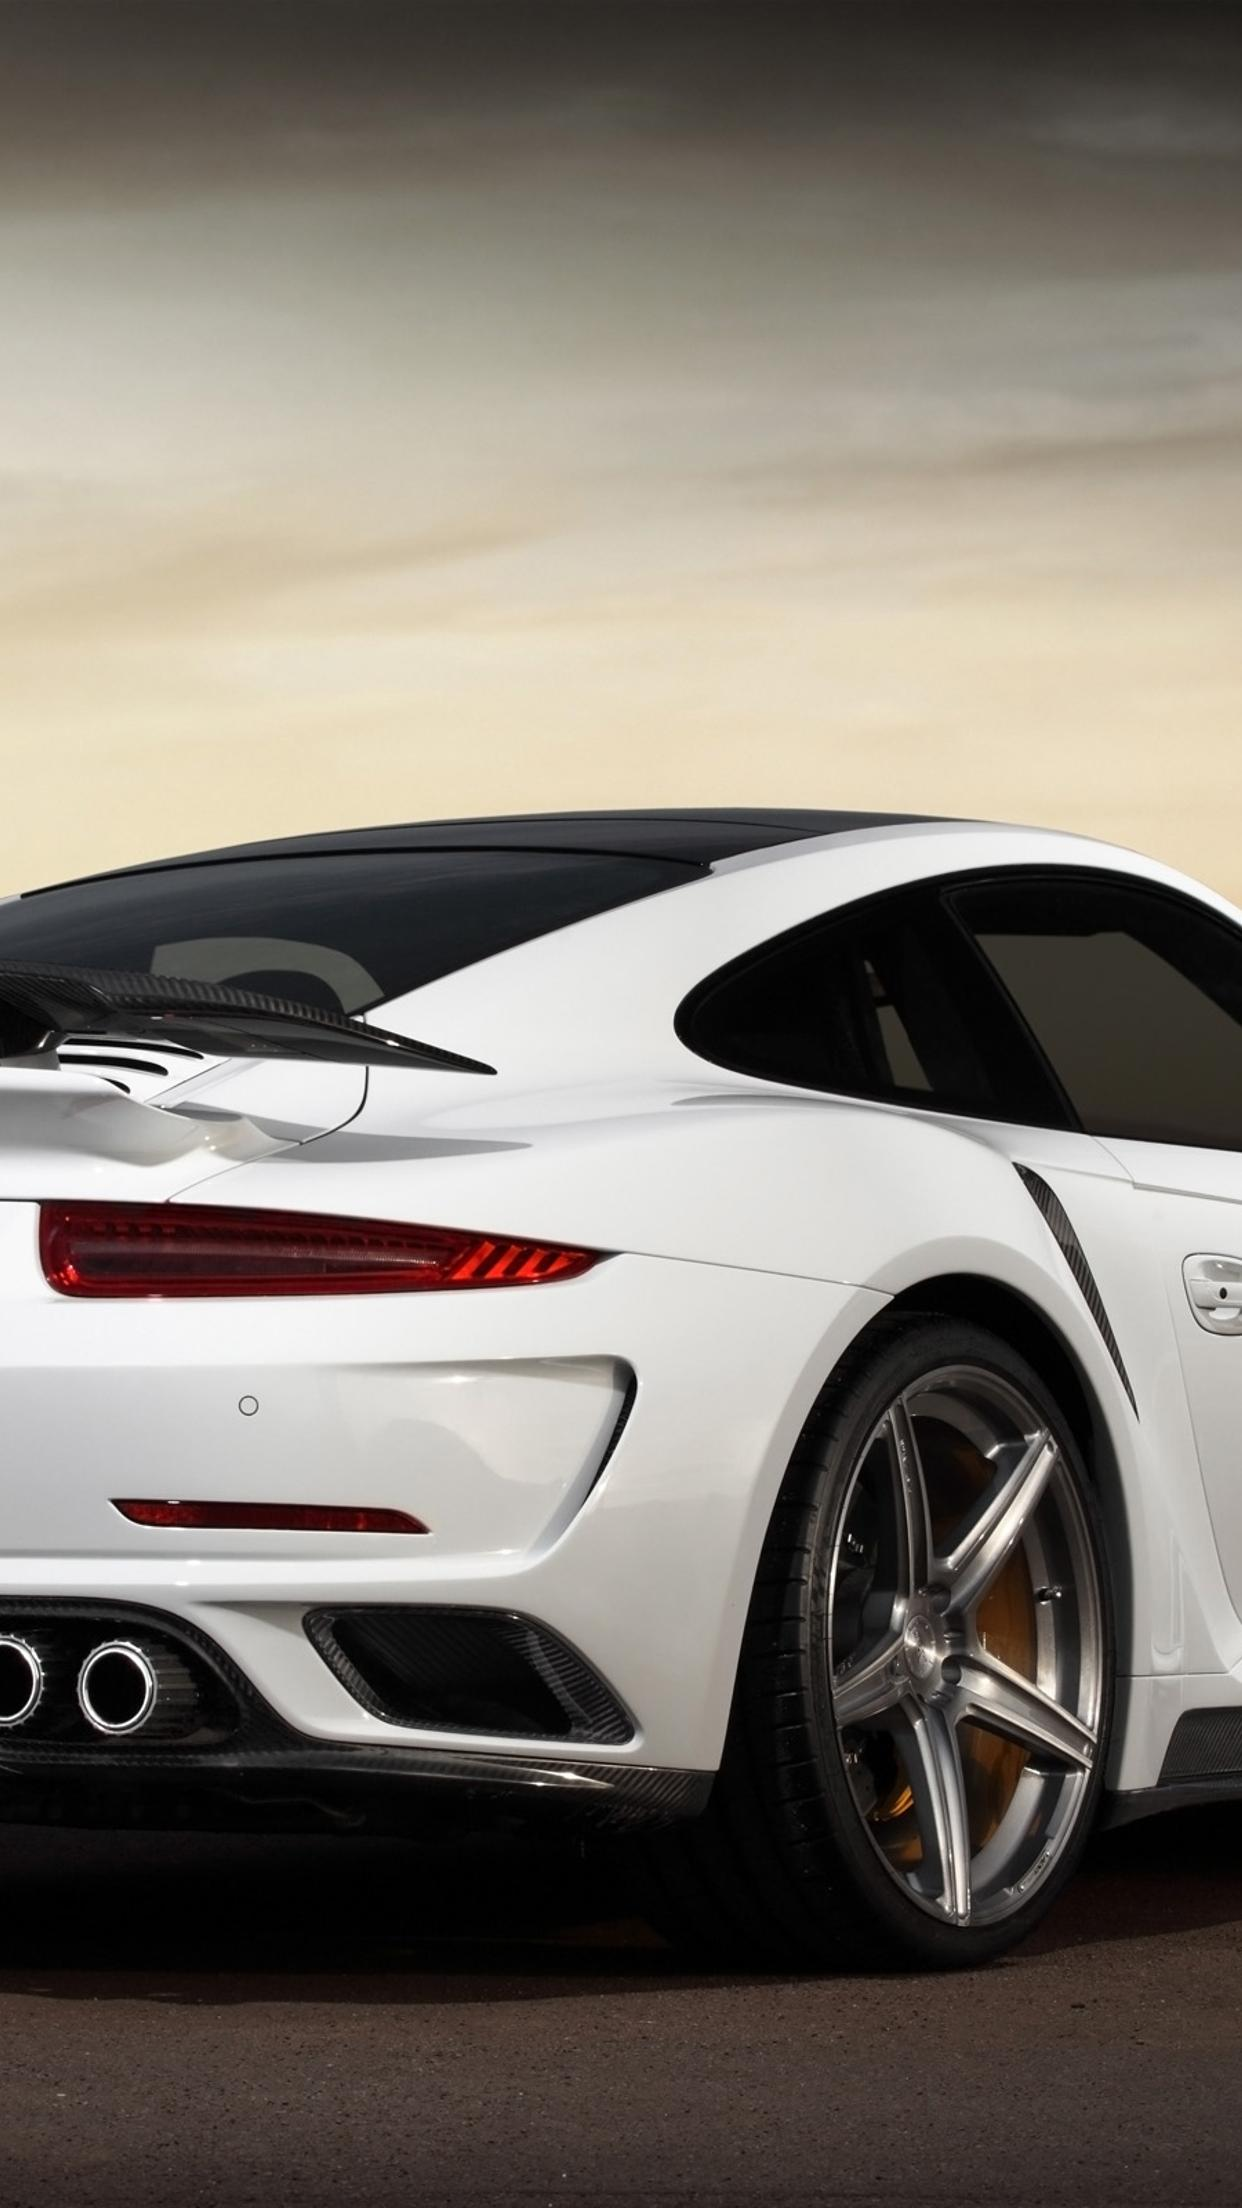 white porsche 911 turbo s stinger wallpaper download 1242x2208